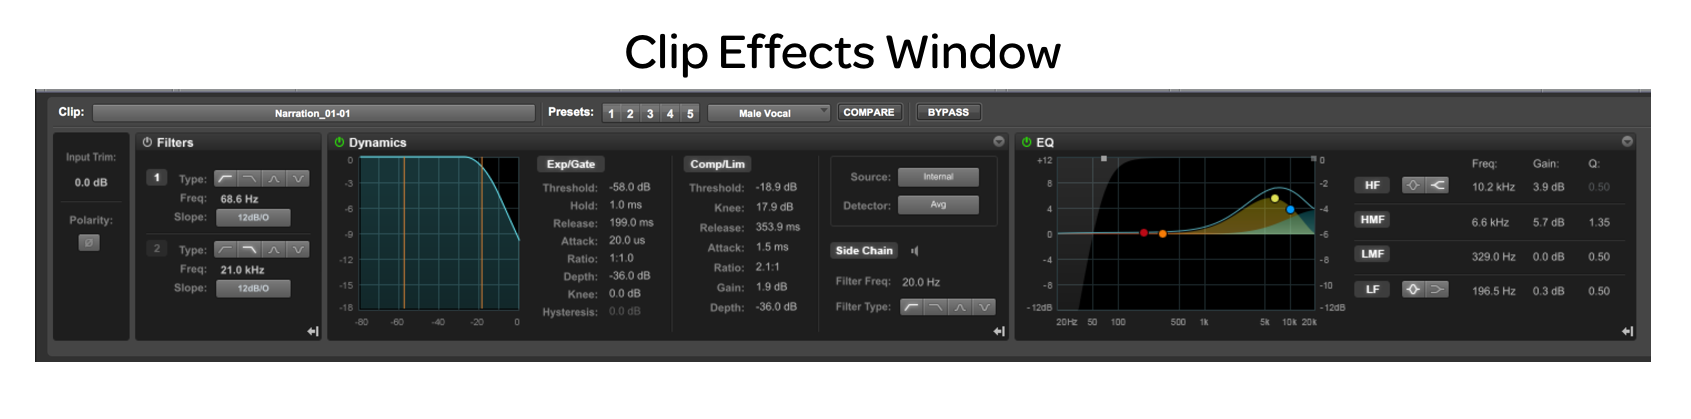 Clip-Effects-Window-2